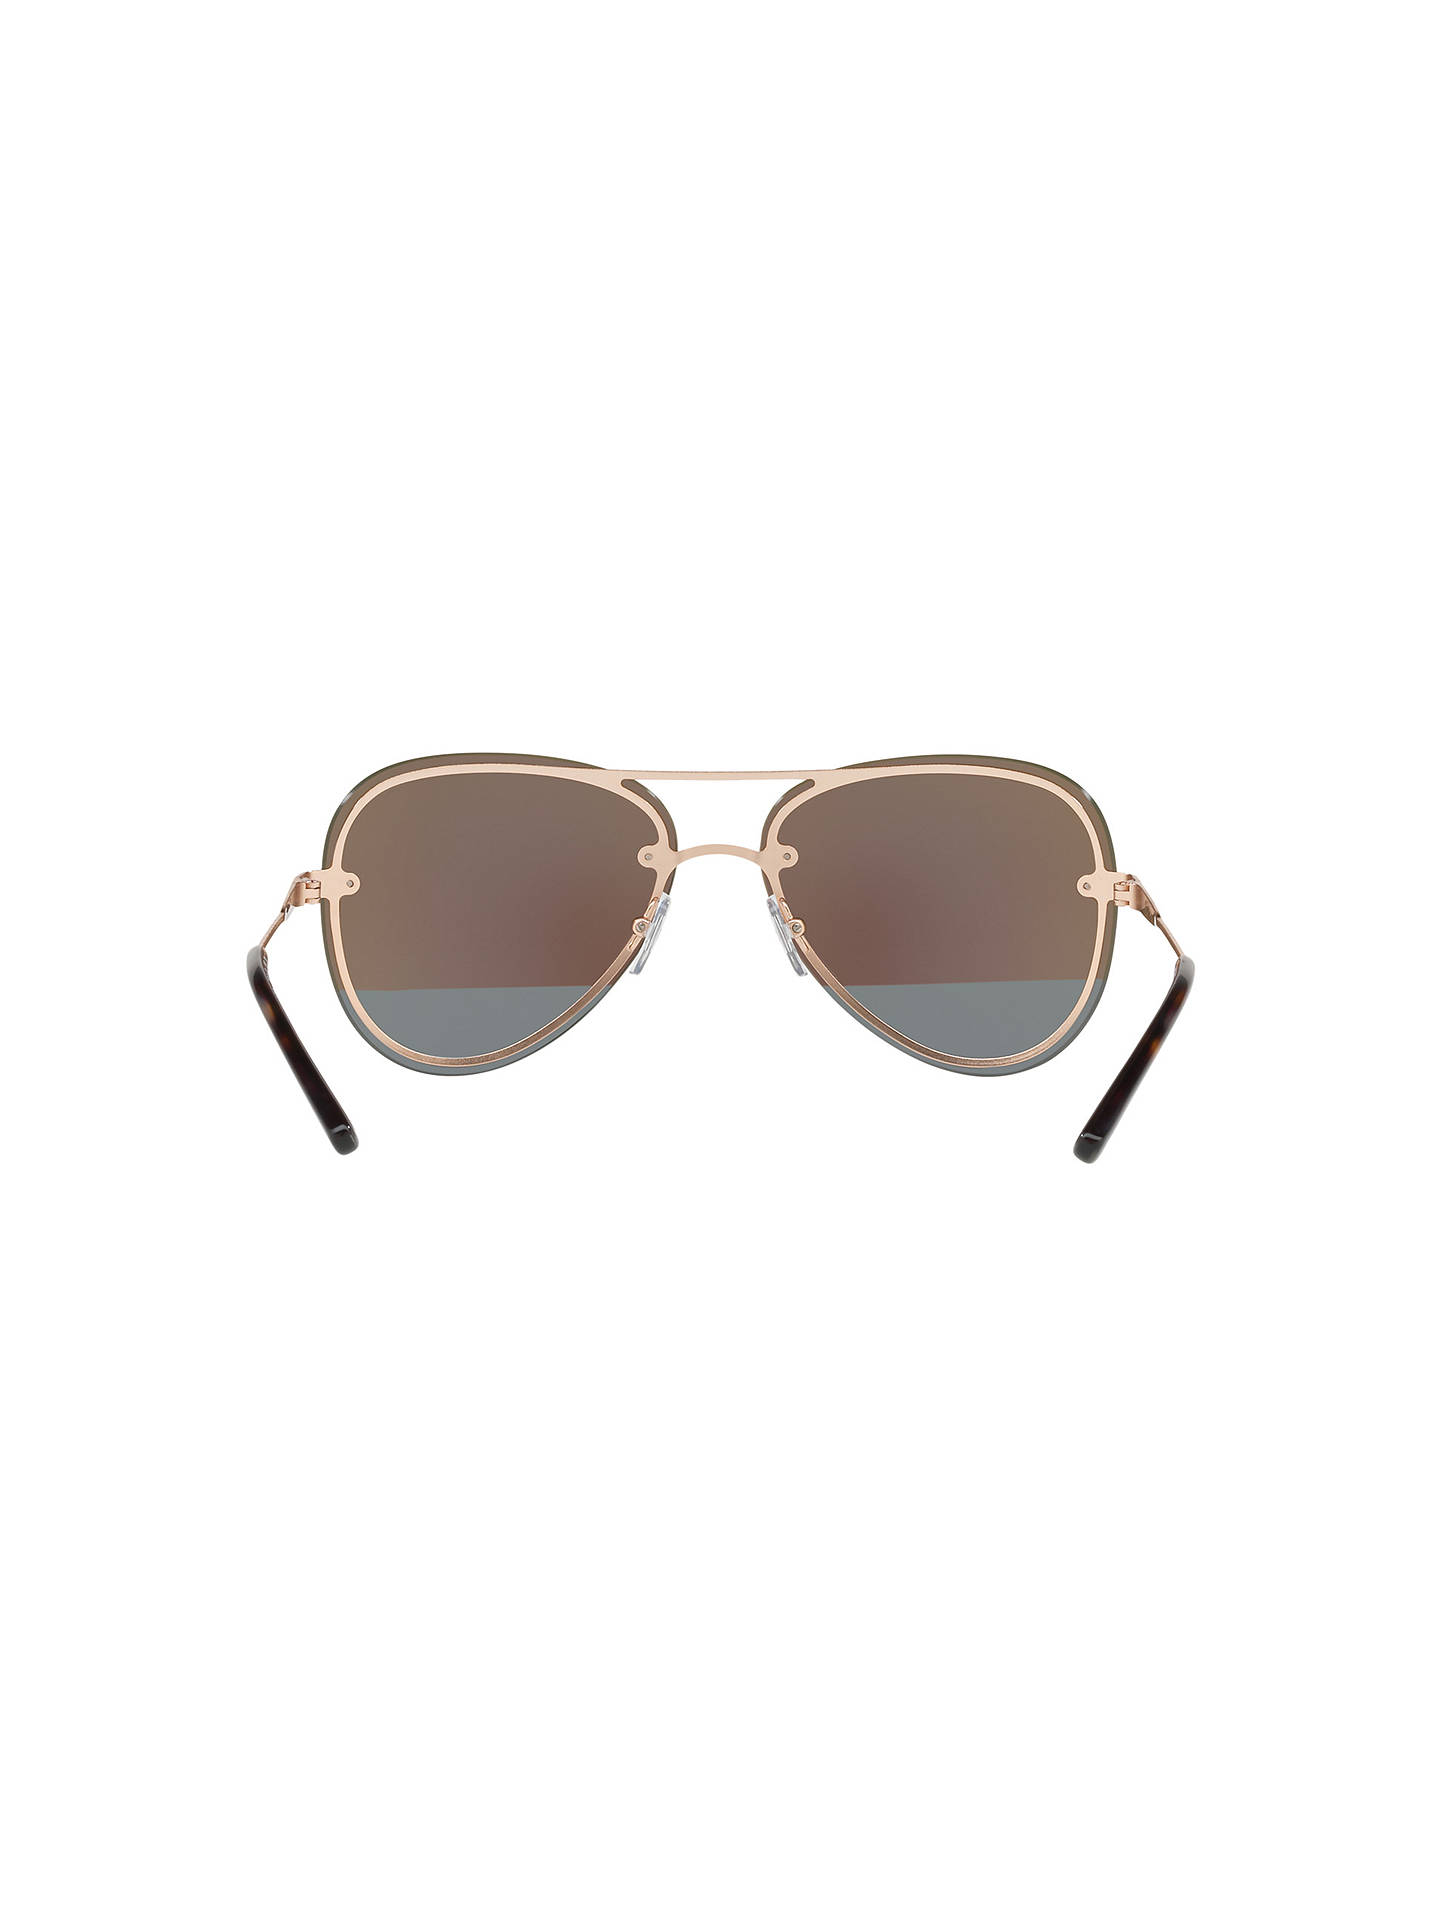 9e12ad406de6 ... Buy Michael Kors MK1026 La Jolla Aviator Sunglasses